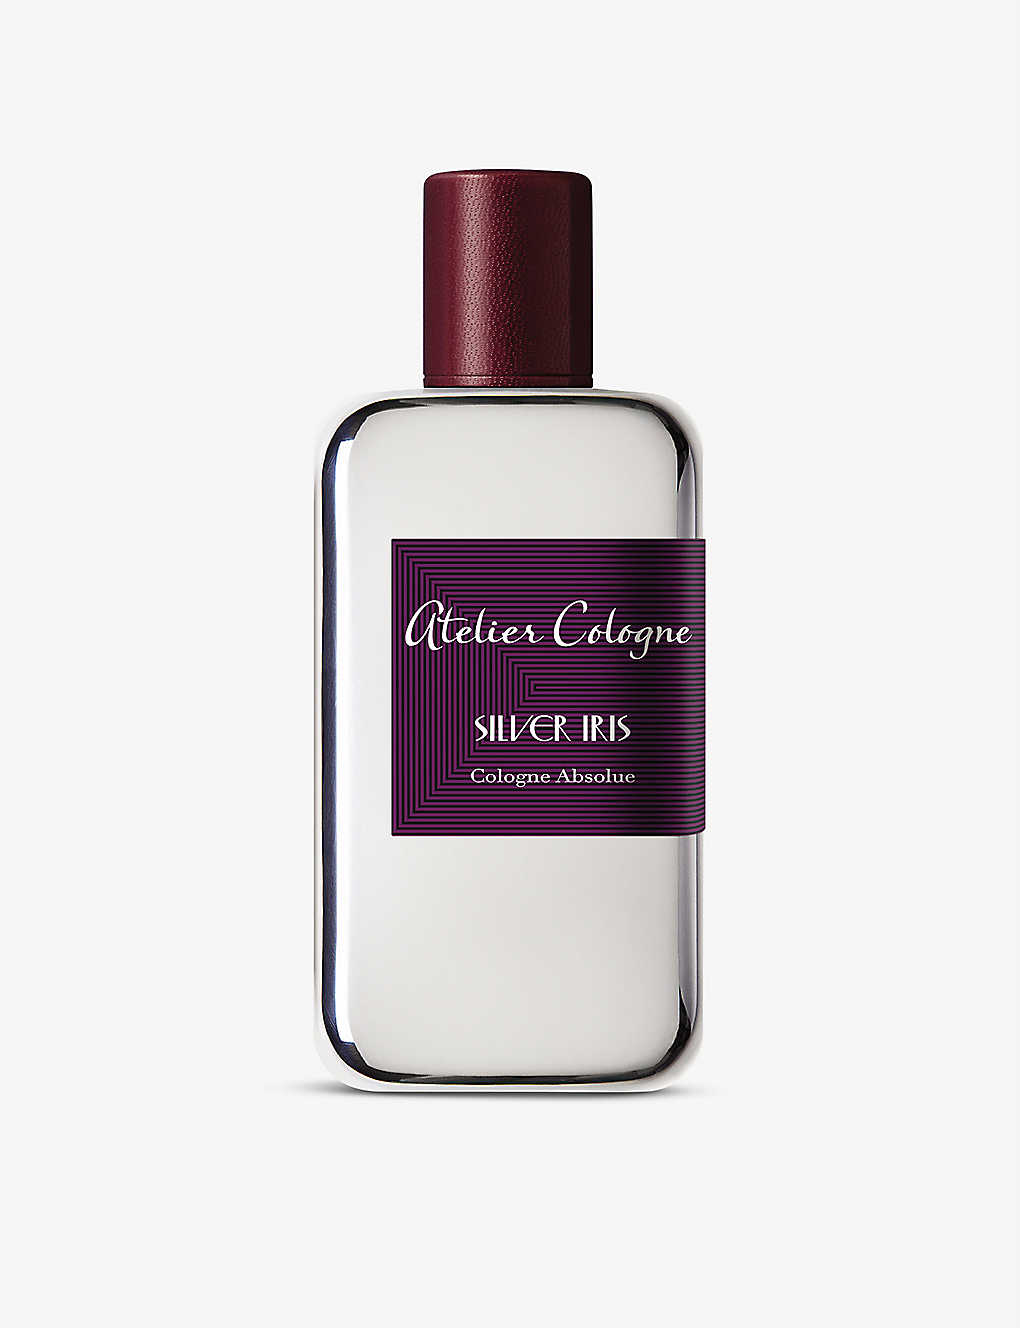 ATELIER COLOGNE: Silver Iris cologne absolue